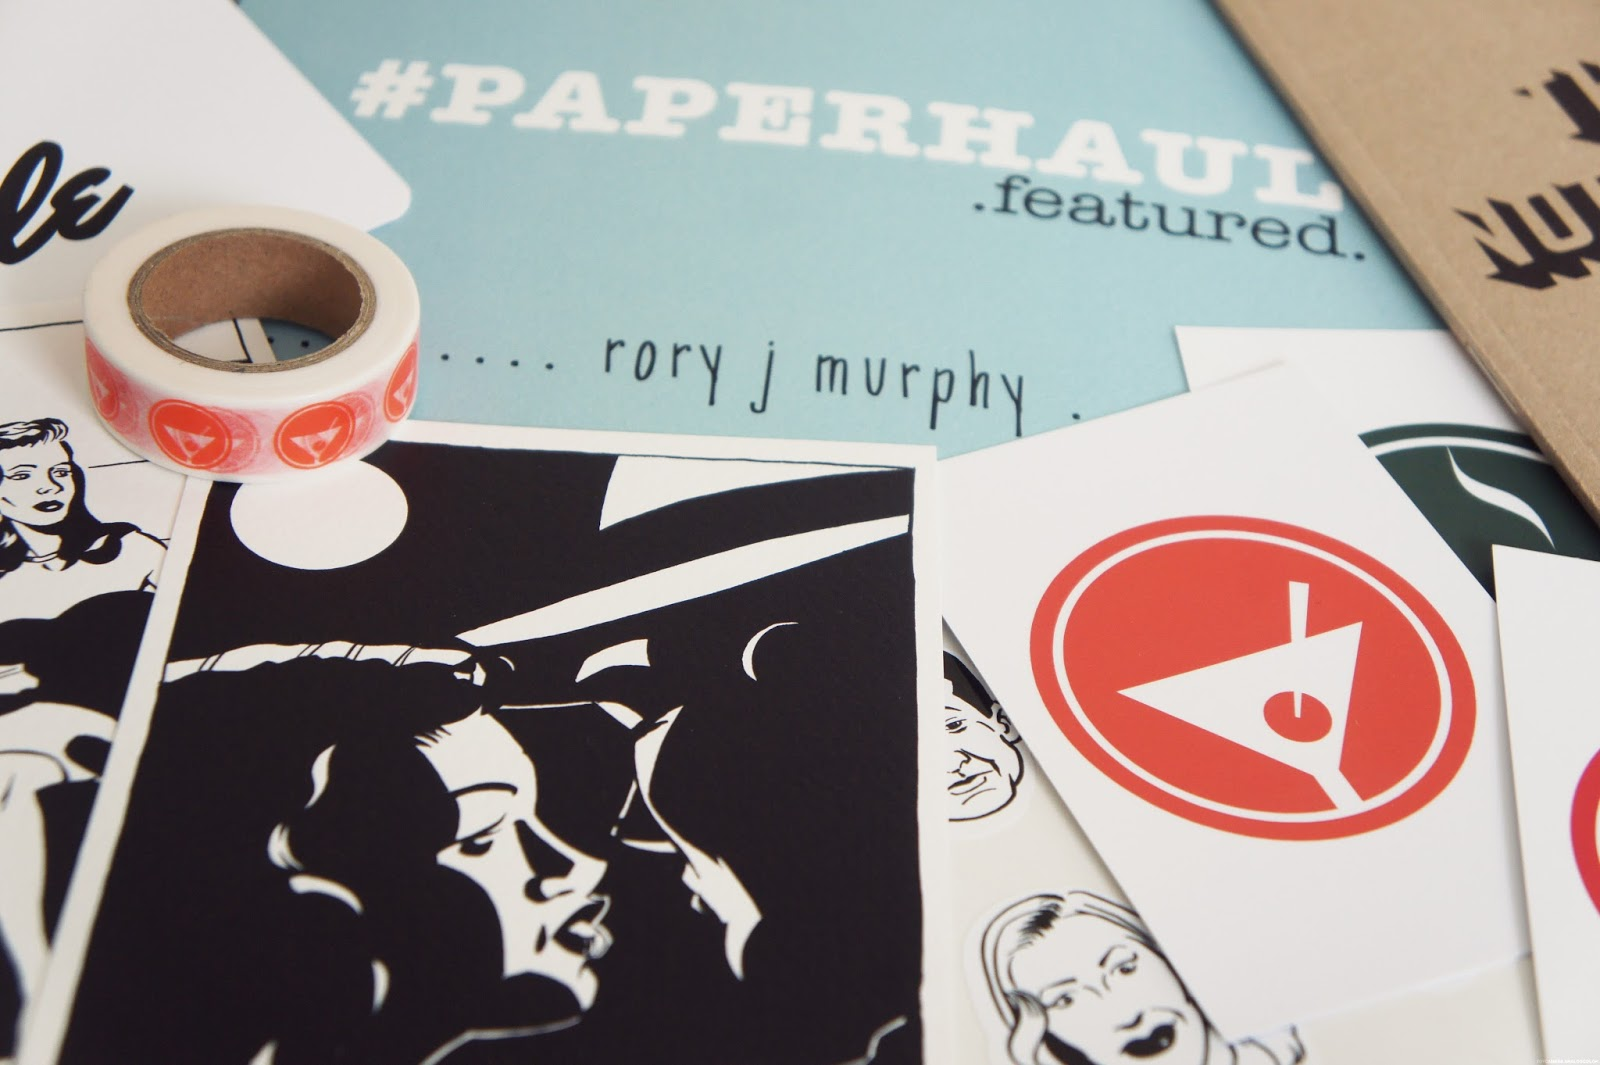 paperhaul featured rory j murphy